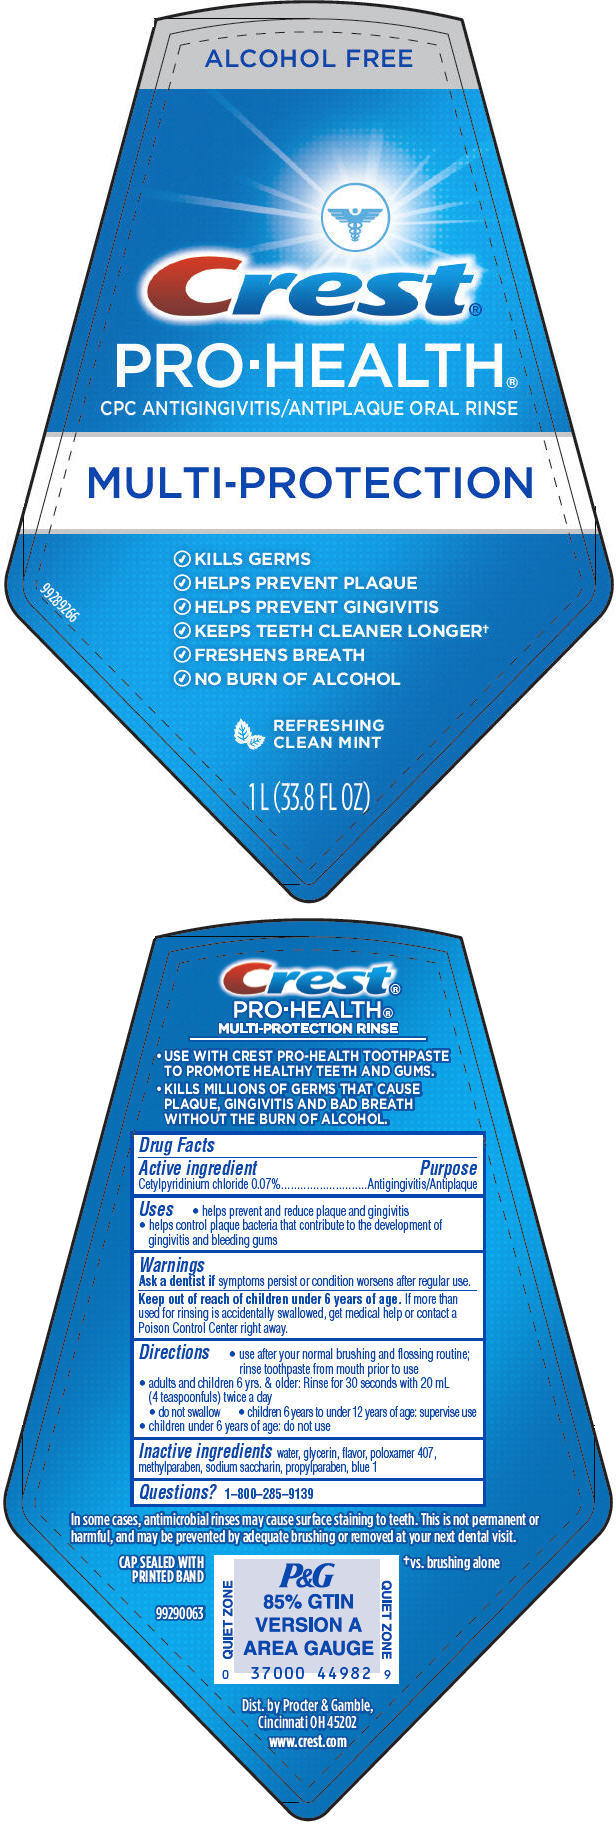 Crest Pro-health Multi-protection Refreshing Clean Mint (Cetylpyridinium Chloride) Rinse [Procter & Gamble Manufacturing Company]